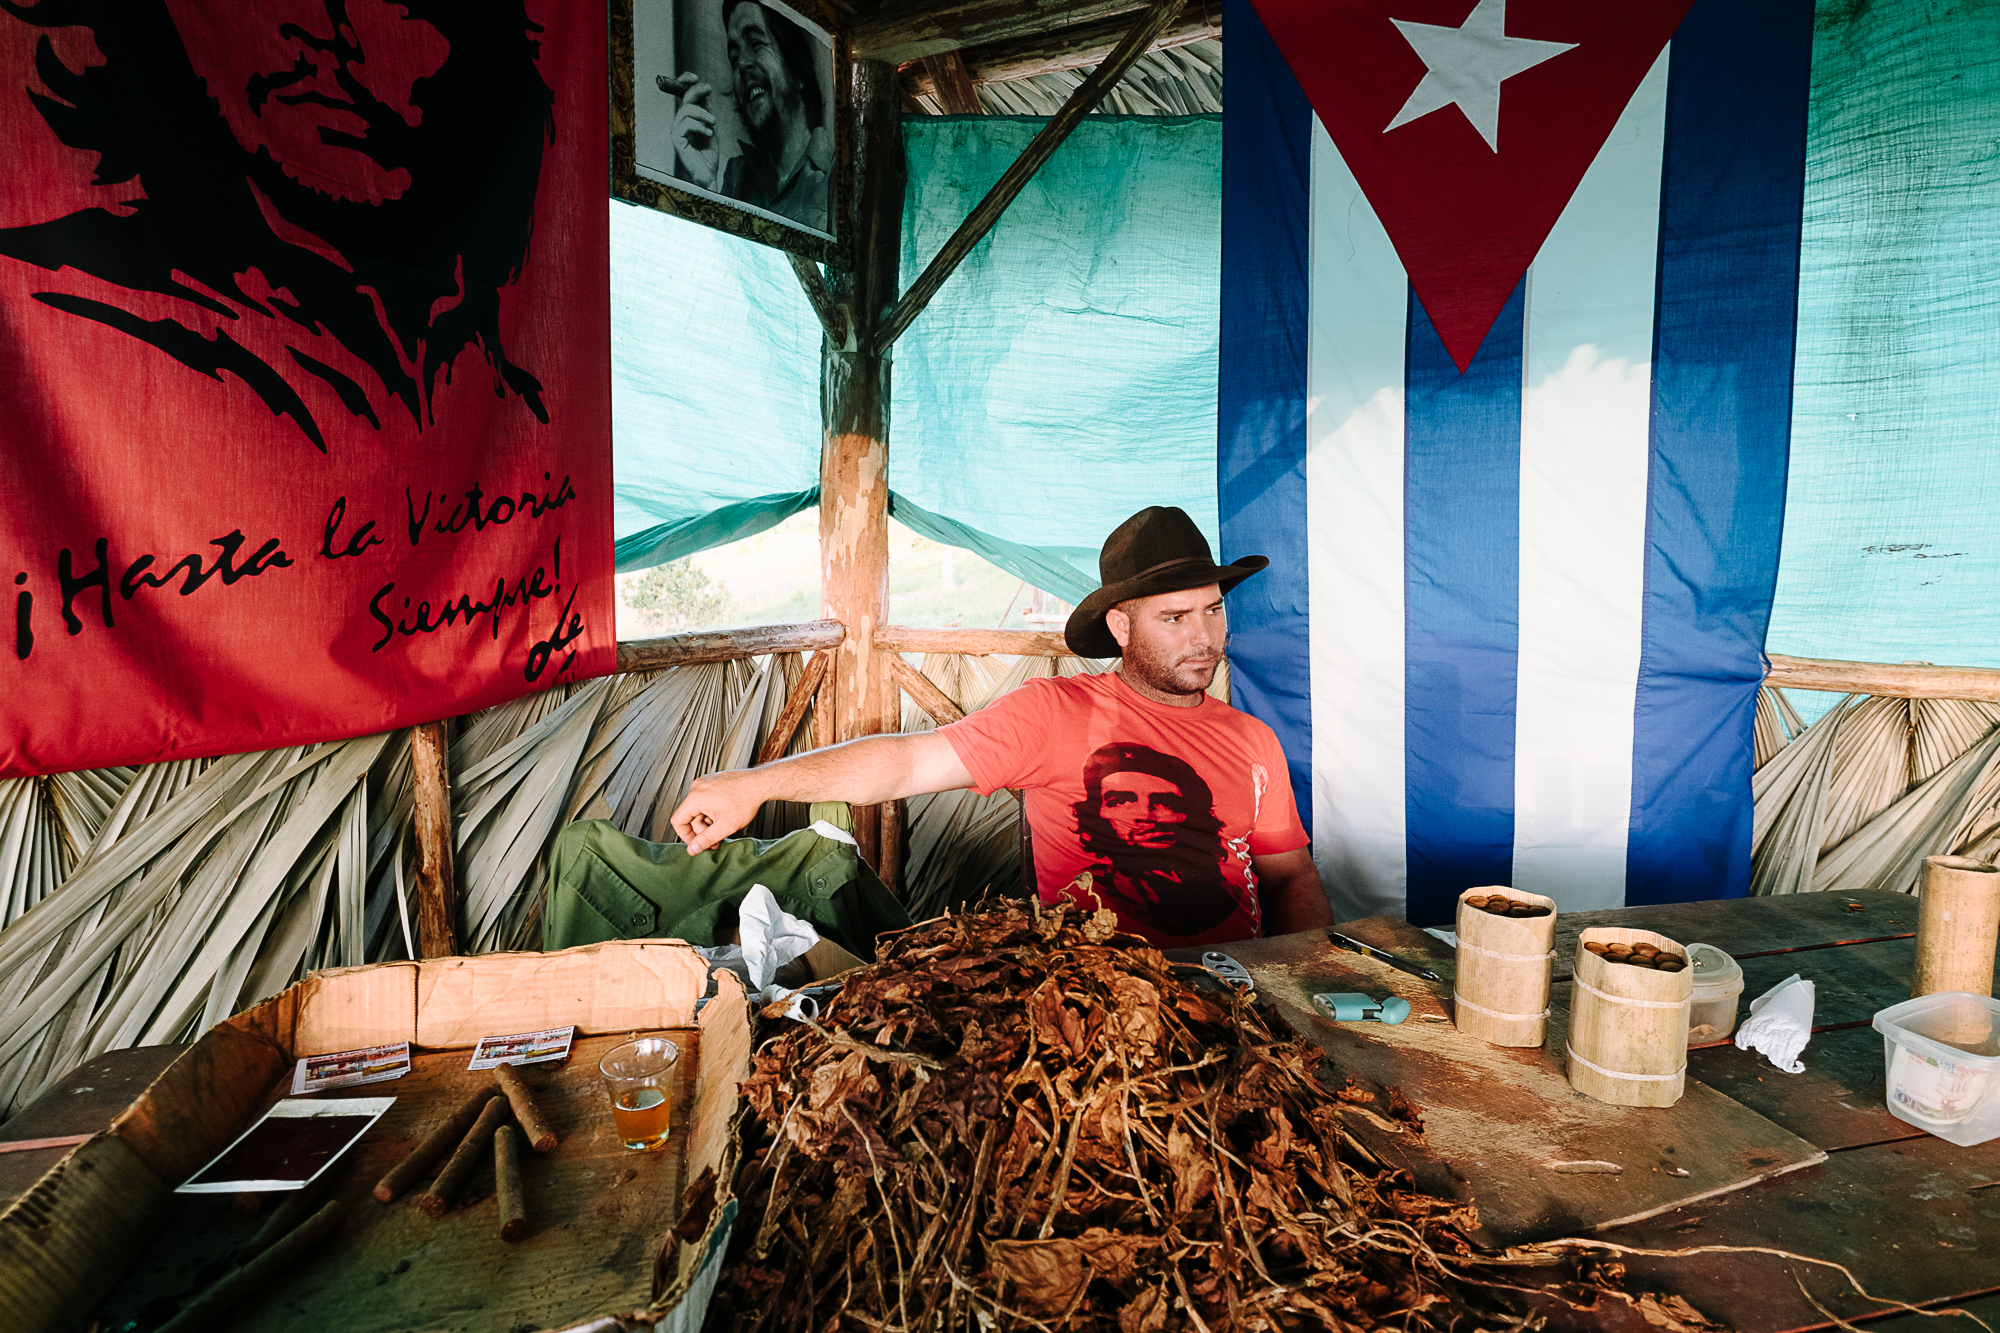 Local farmer shares the process of making the authentic Cuban cigar